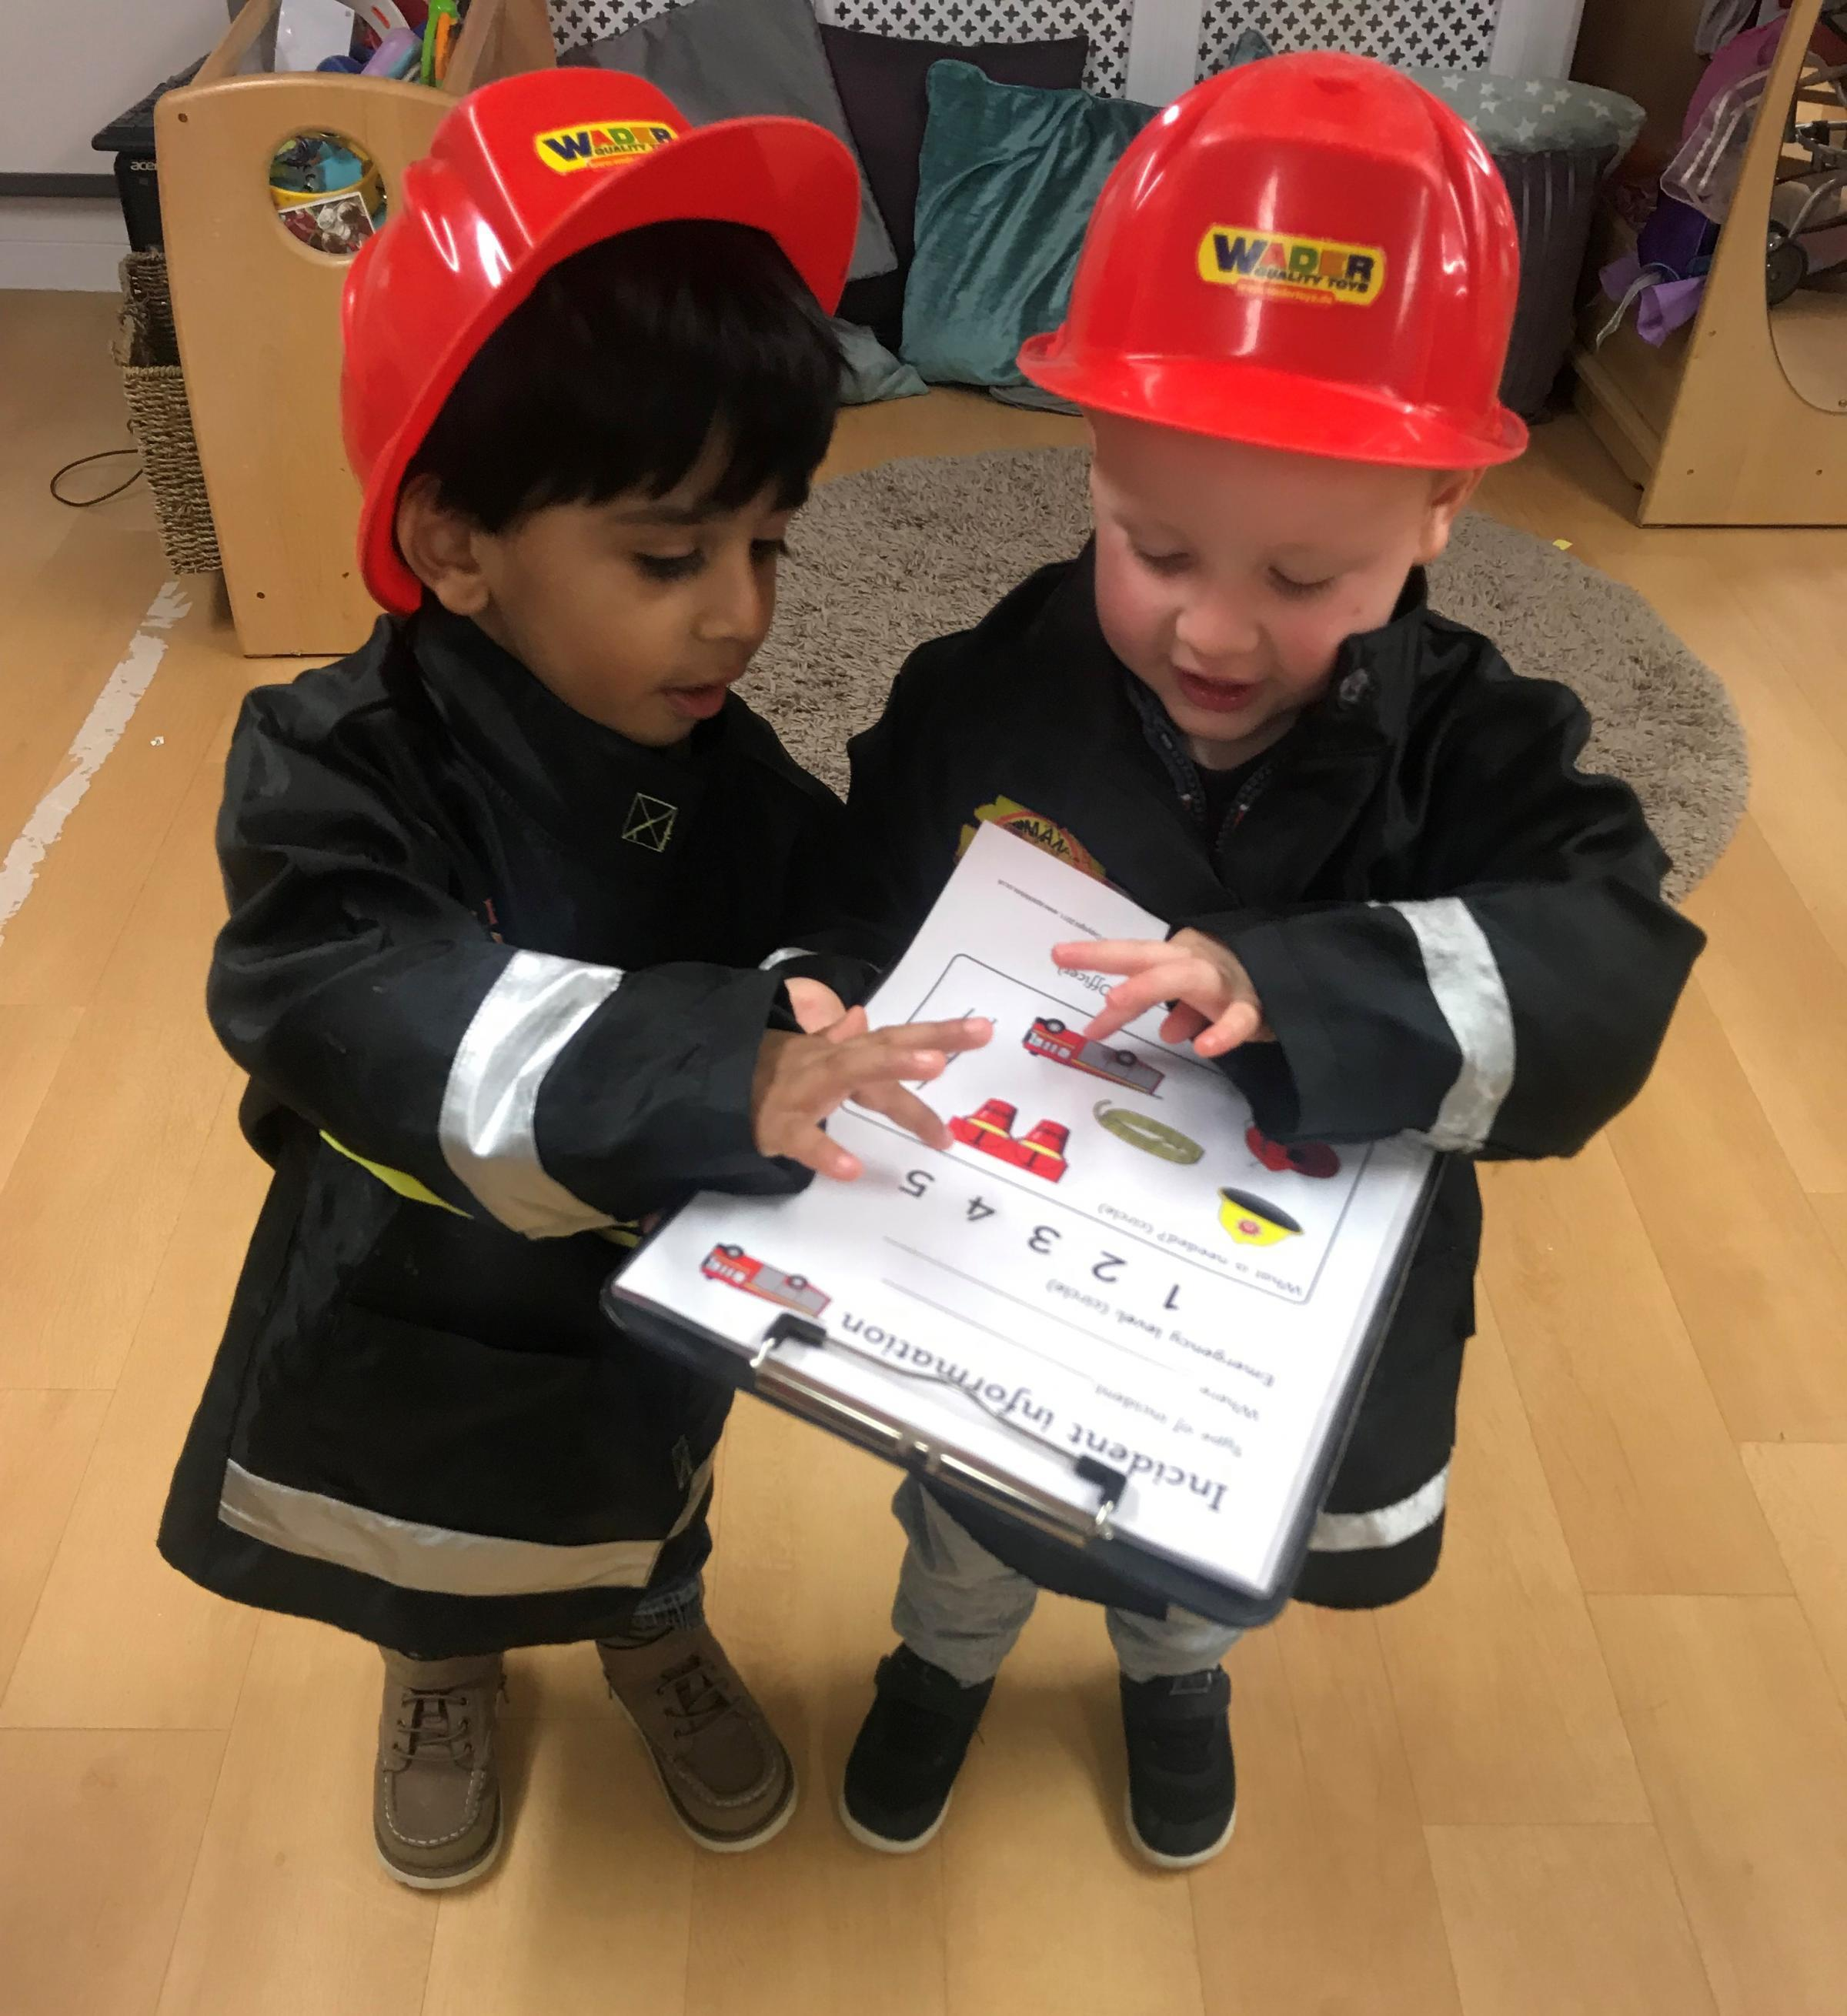 Pre-school children at Windmill Hill Day nursery trying on being a firefighter for size